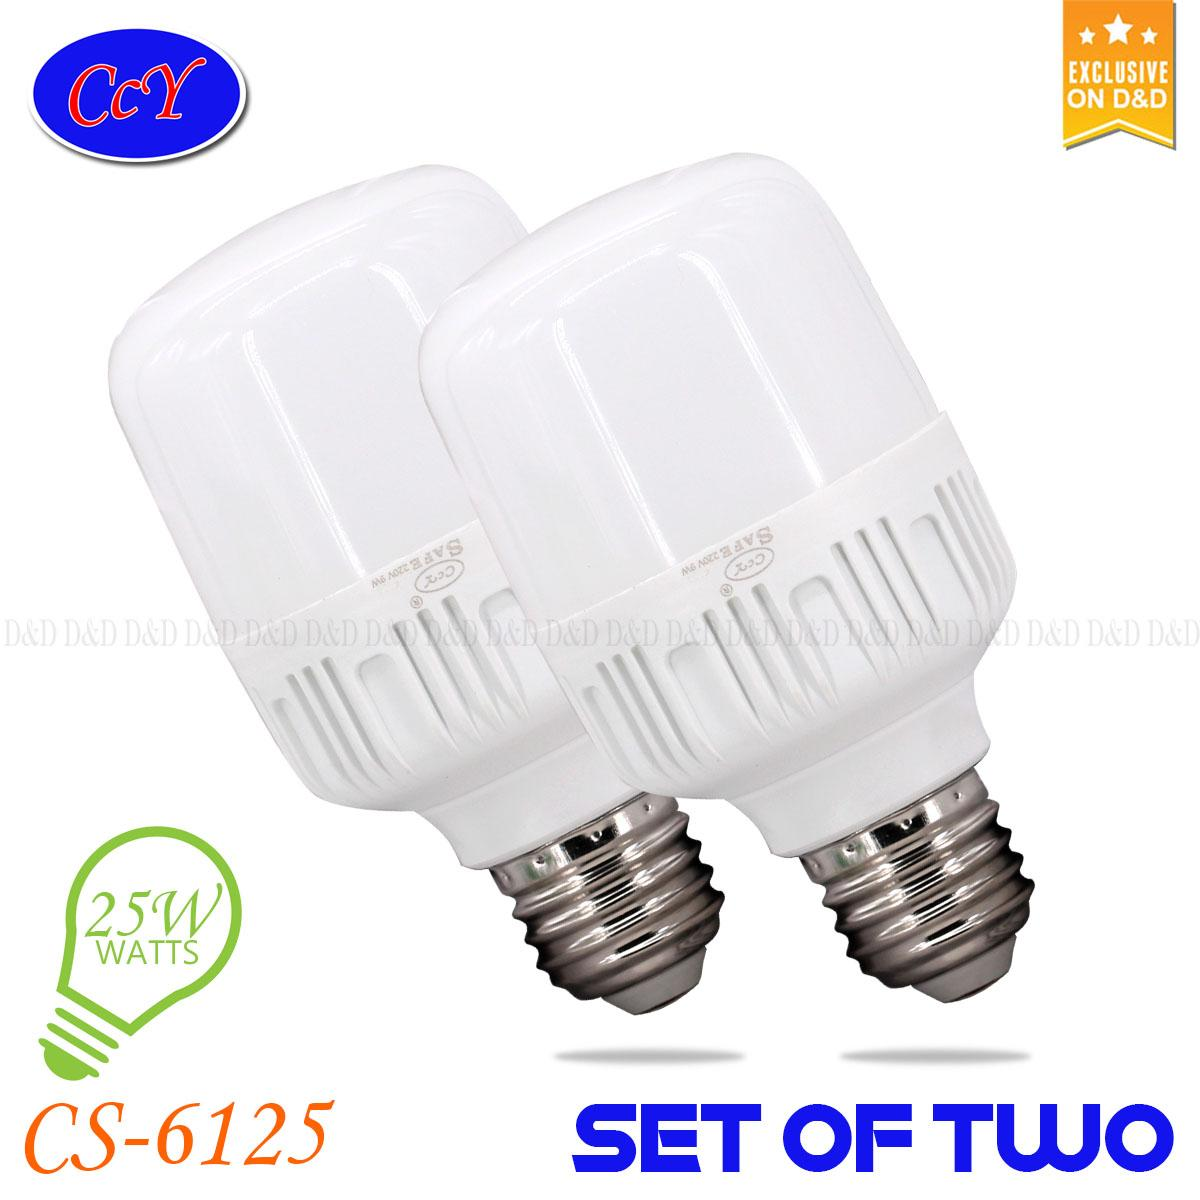 Light Bulbs For Sale Led Prices Brands Review In Wiring A Double Bulb Lamp Ddccy Safe 25 Watts Set Of Two Energy Savinglong Durationhigh